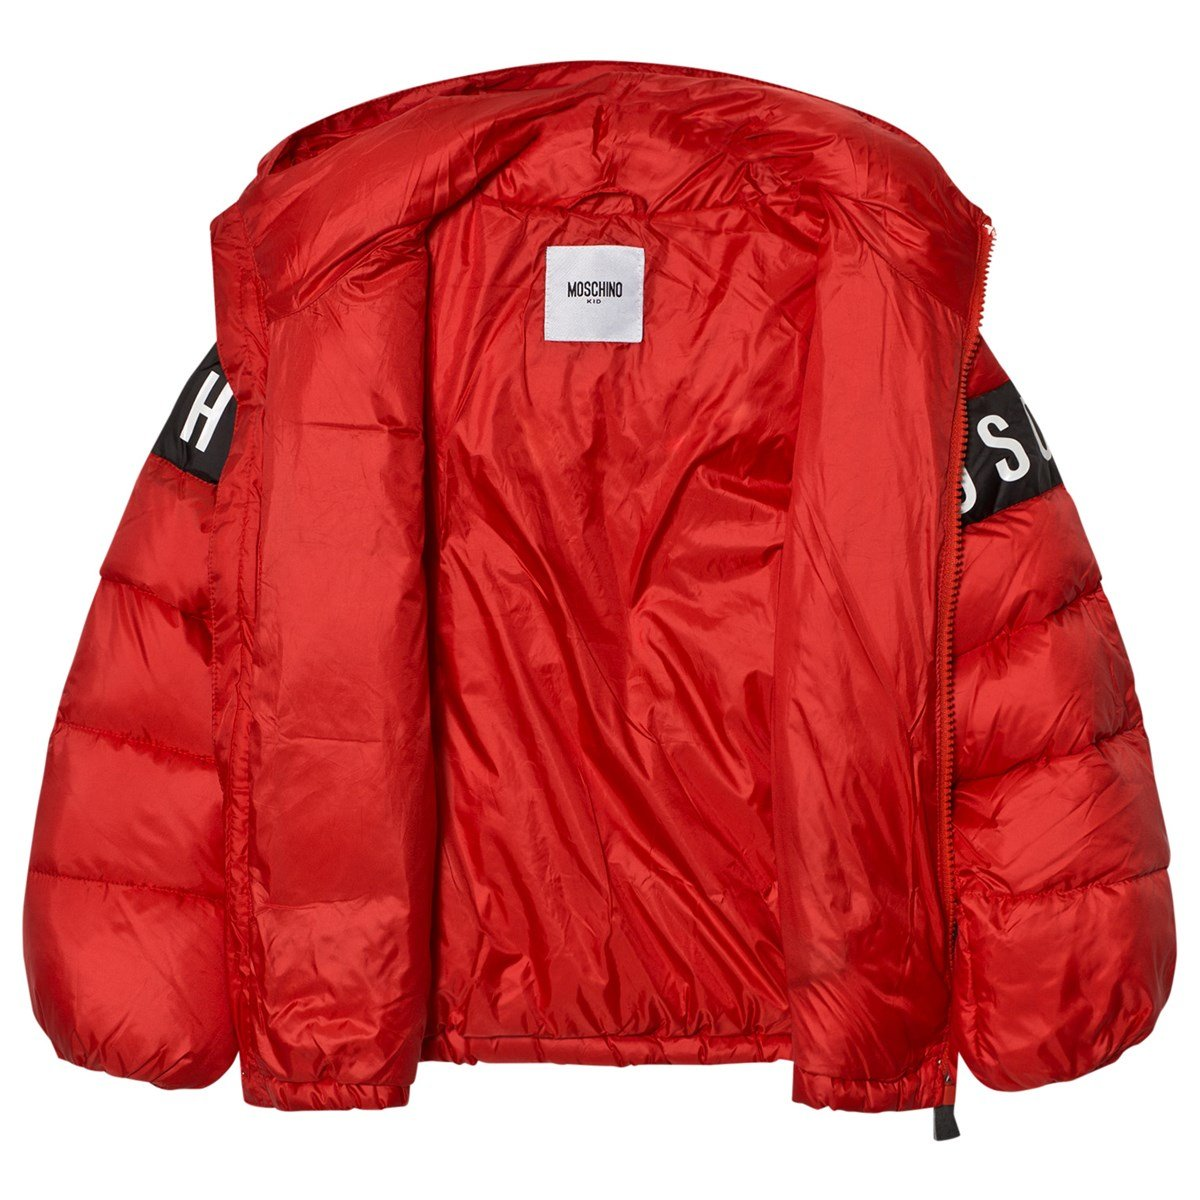 dde750733e14 Moschino Red Branded Down Puffer Coat with Detachable Hood ...